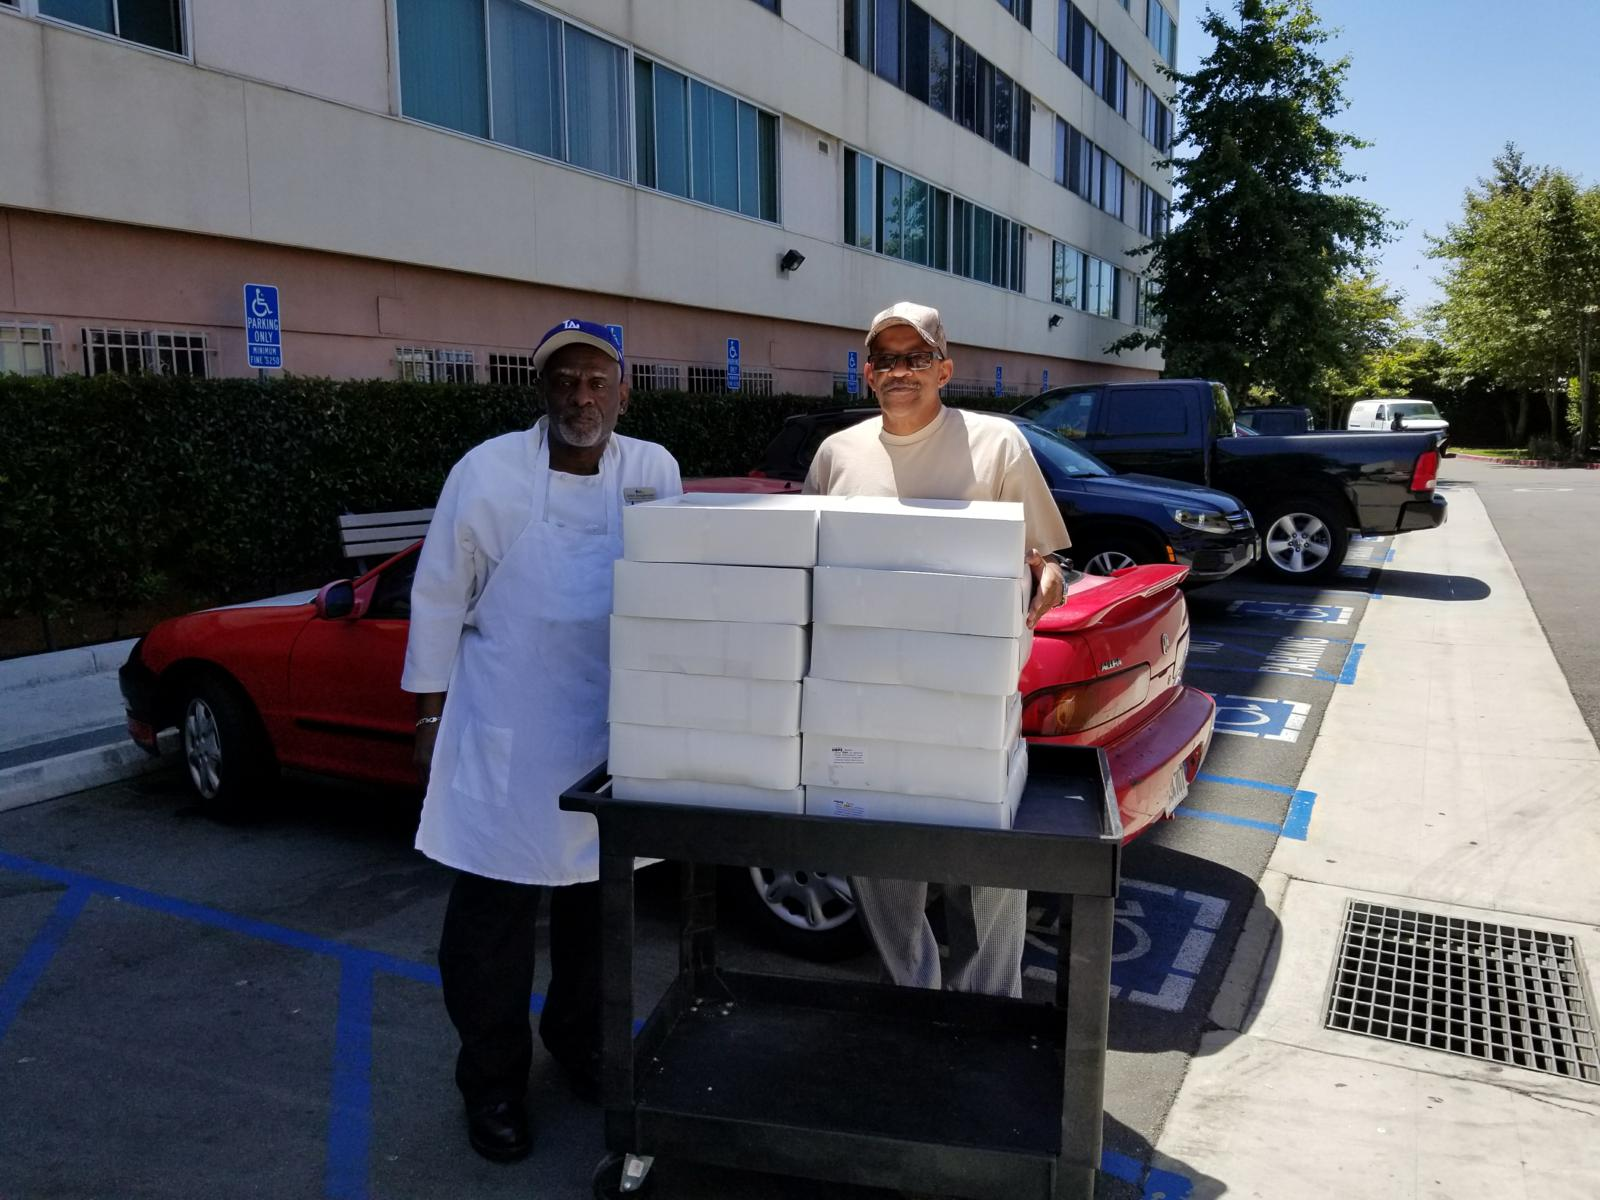 Veterans Wellness Services - Donating Food To US Vets